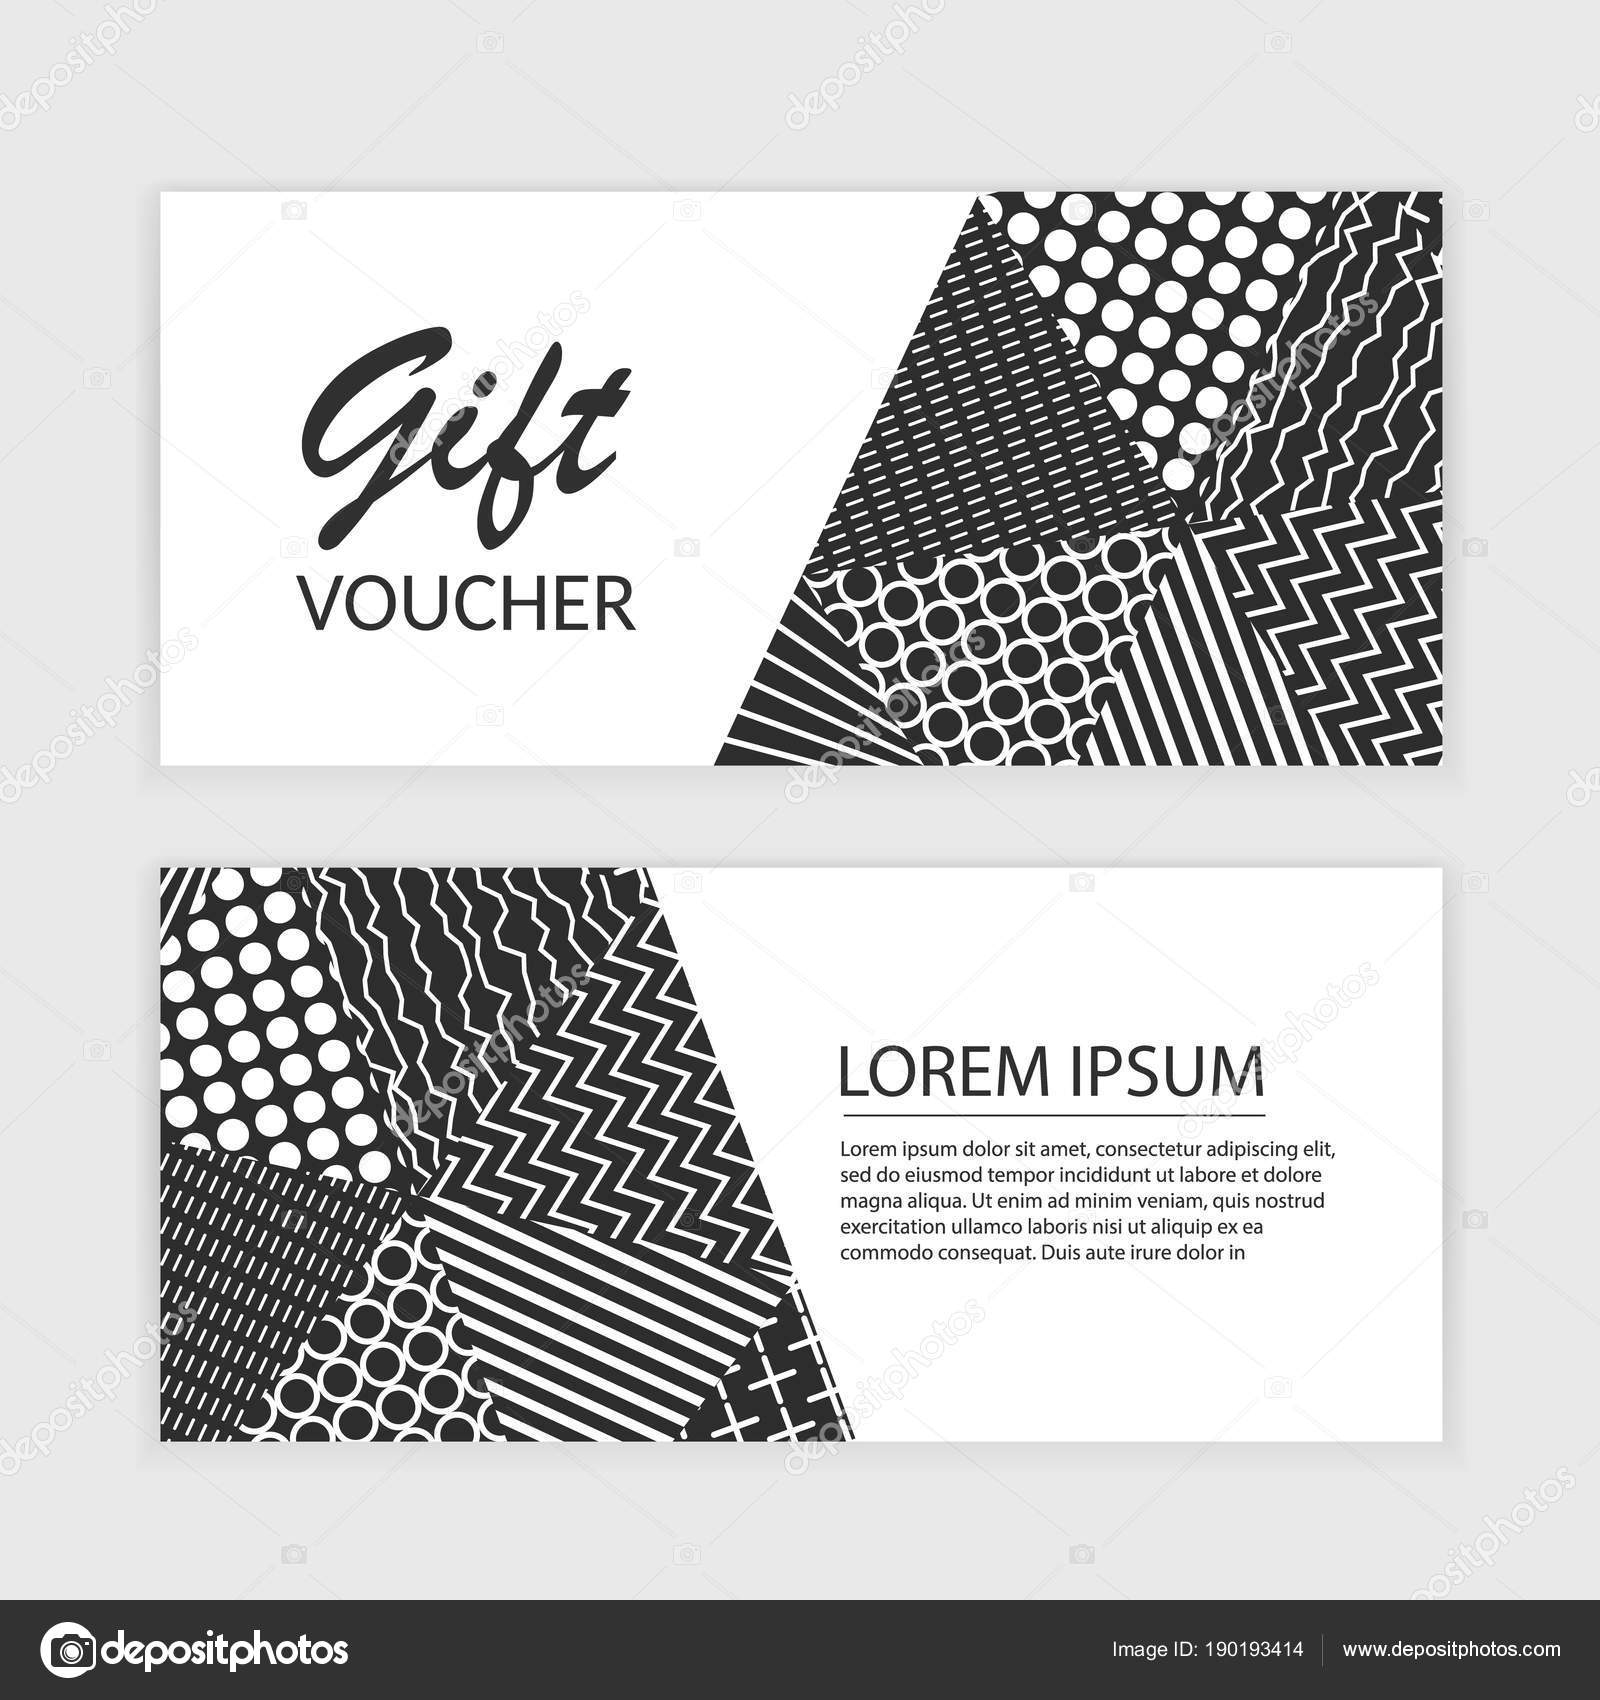 vector gift voucher template with abstract triangle background